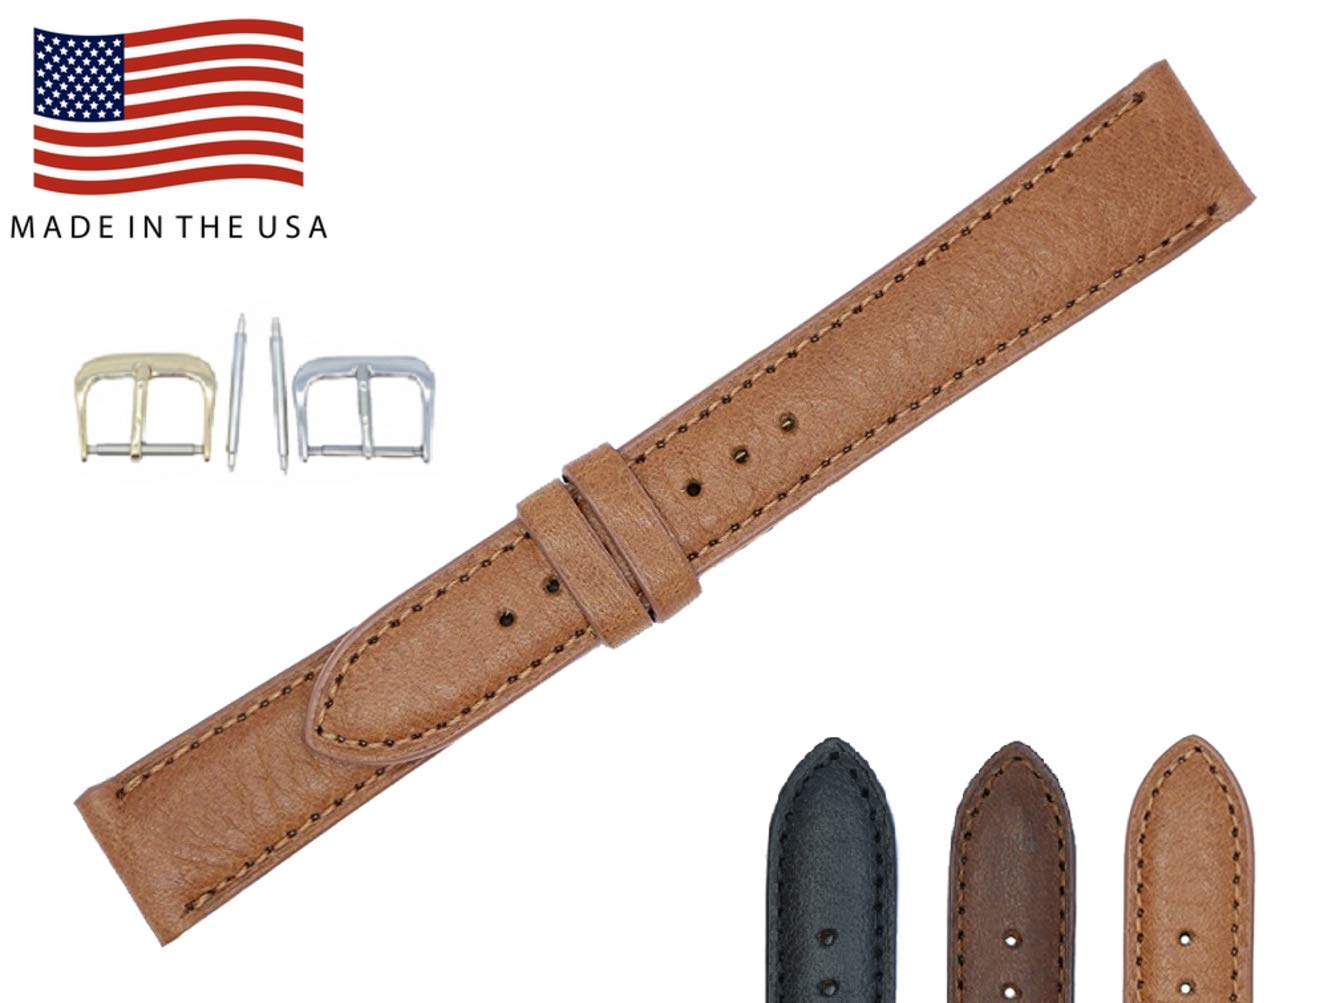 Montana Genuine Leather Watch Band Strap - American Factory Direct - 16mm 17mm 18mm 19mm 20mm 22mm - Both Gold & Silver Buckles Included - Made in USA by Real Leather Creations 16mm Tan PAD FBA46 by Real Leather Creations (Image #6)